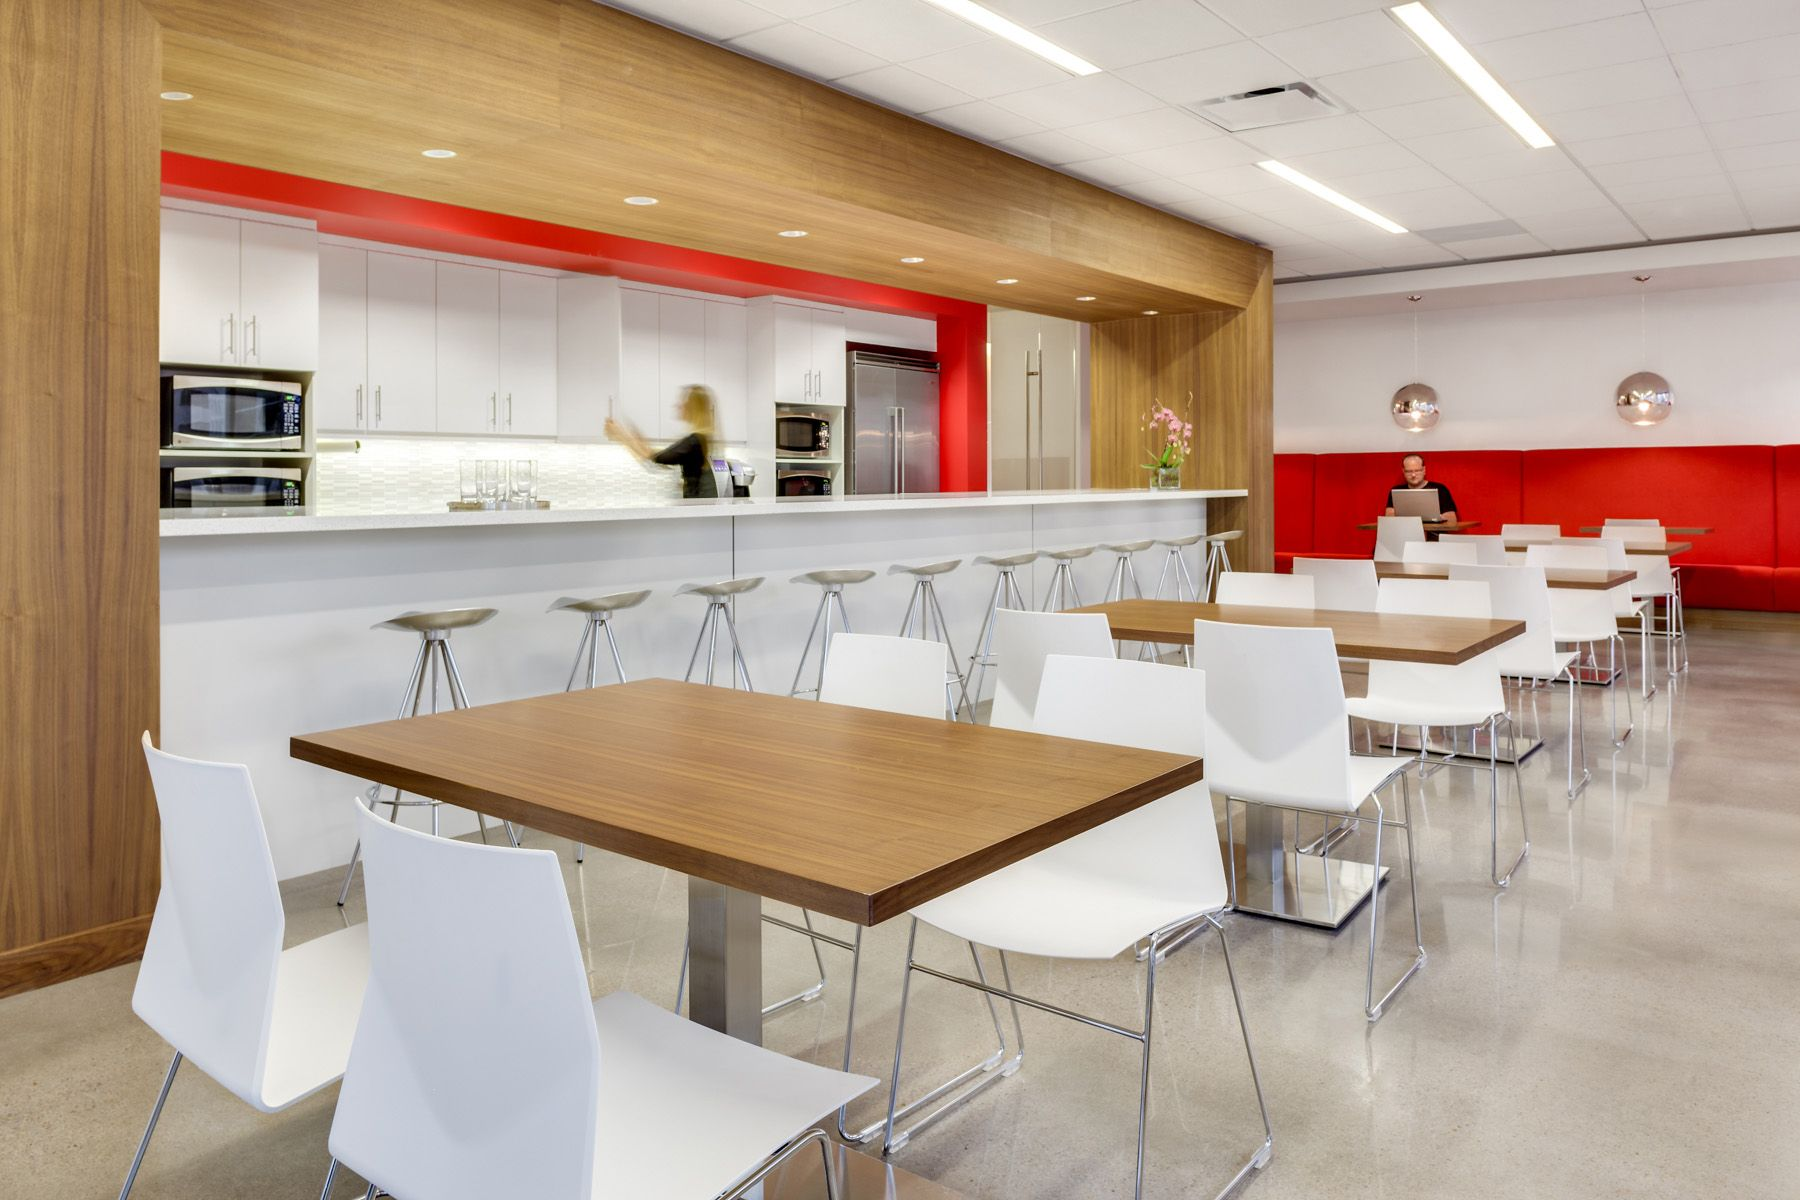 office break room design. brilliant design office  nice looking break room design ideas in kitchen bar area  for c